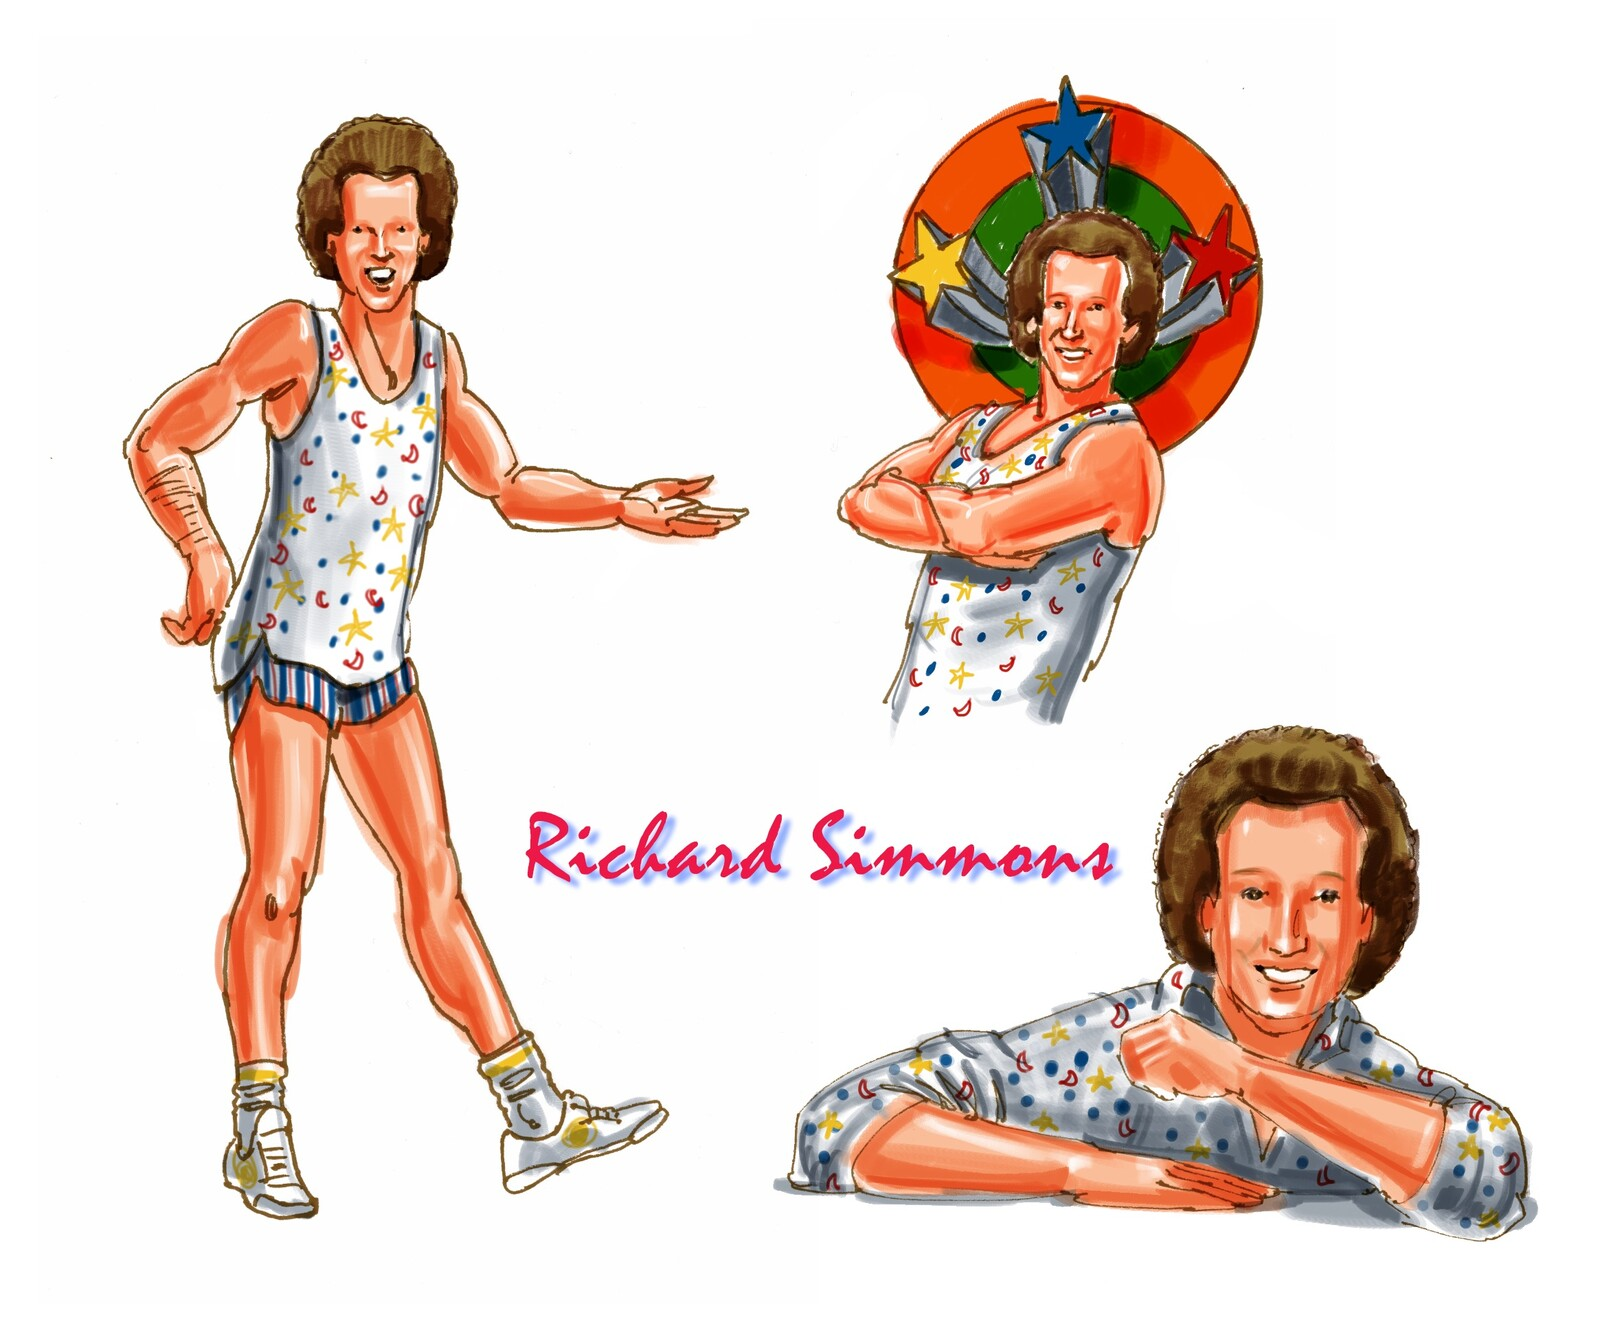 Richard Simmons exercise DVD's